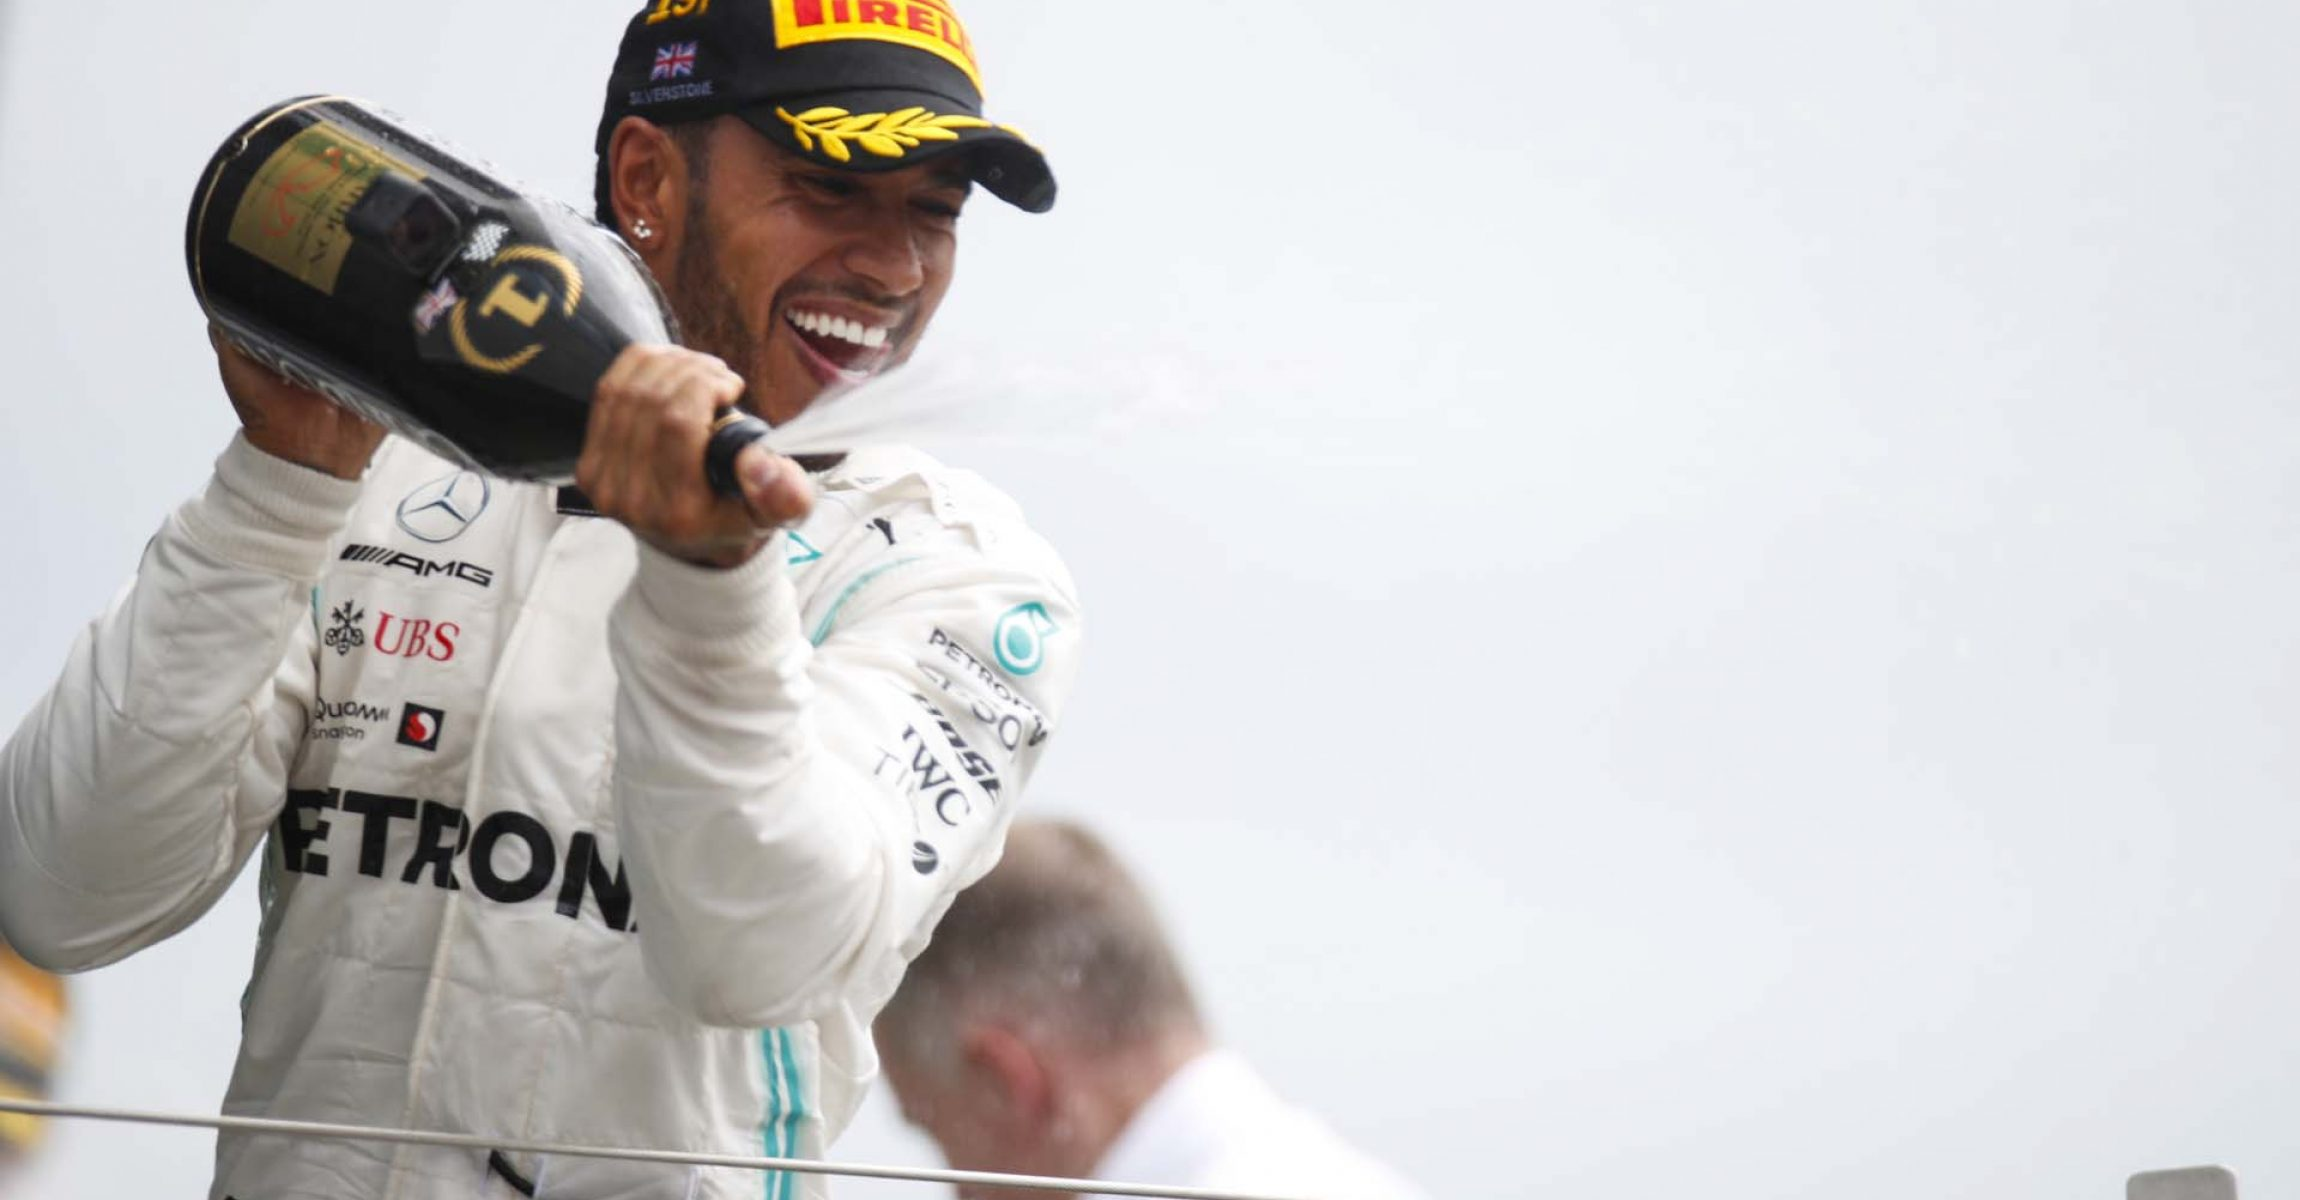 2019 British Grand Prix, Sunday - LAT Images Lewis Hamilton Mercedes champagne